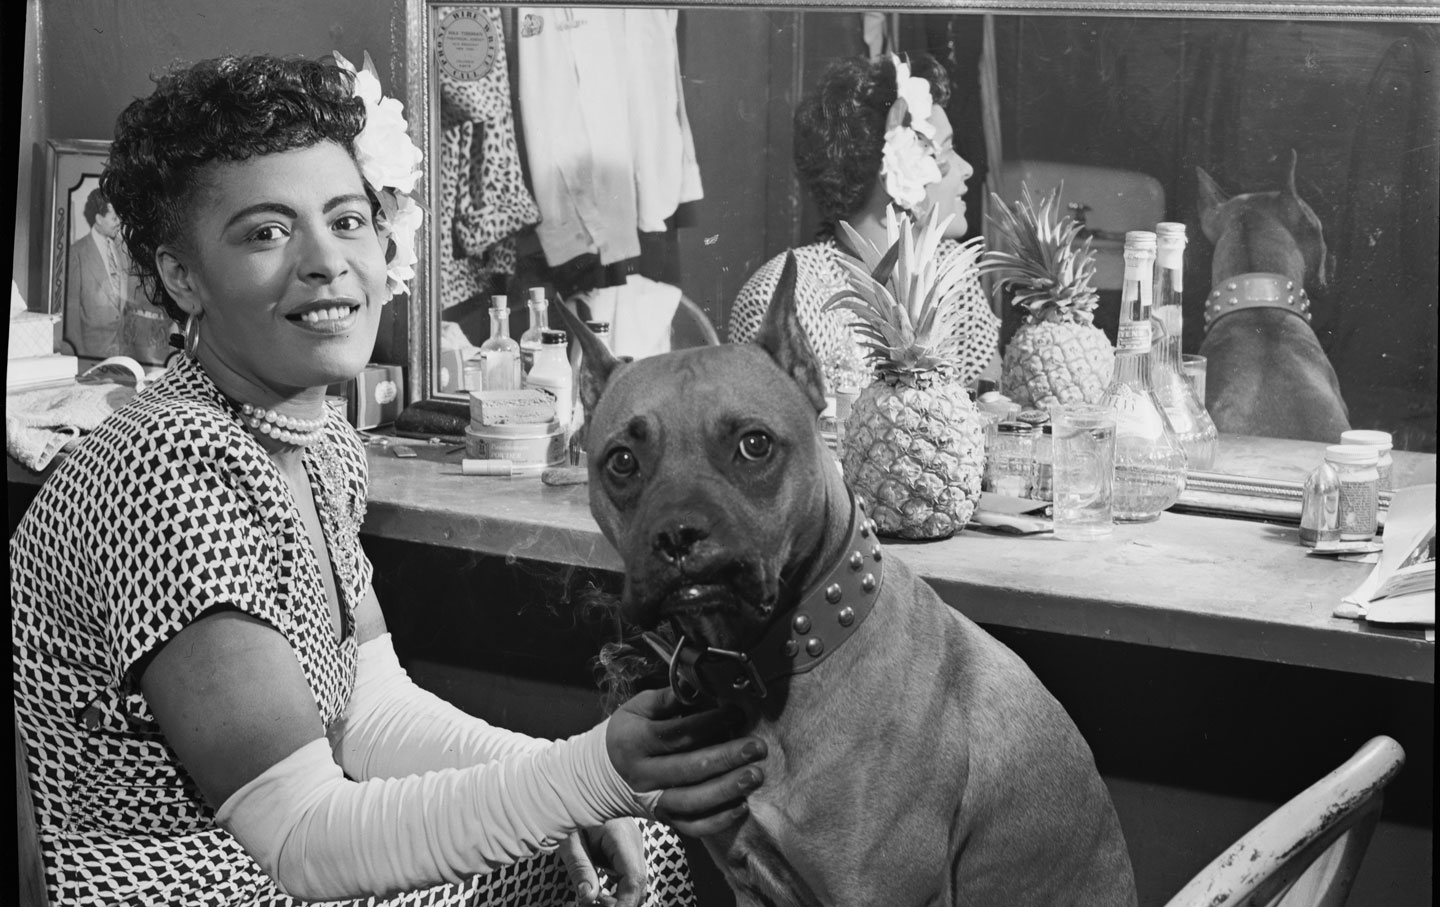 Billie Holiday and Mister, circa 1946. (Credit: William P. Gottlieb / LOC)